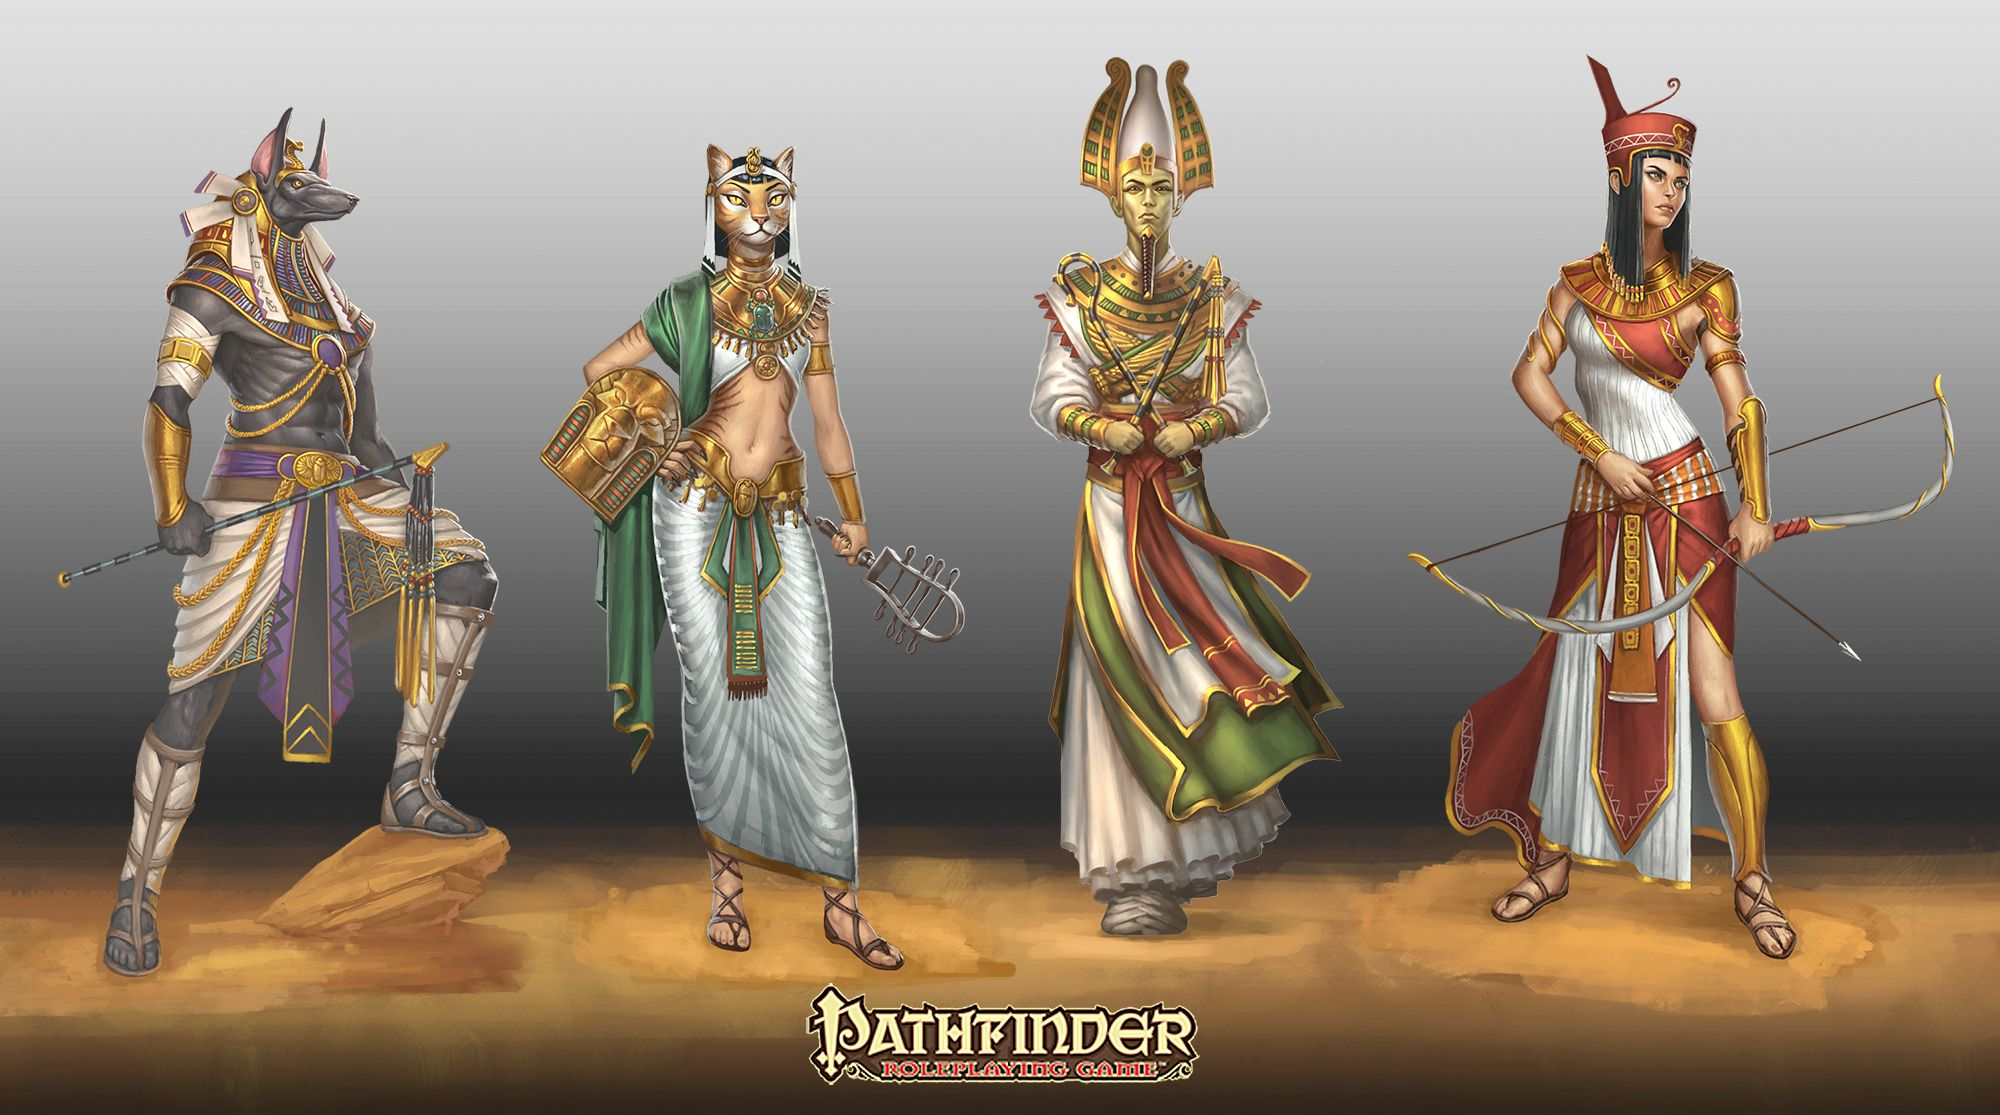 Fantasy Gods Ancient Egypt Egyptian Neith Osiris Bastet Anubis Wallpaper